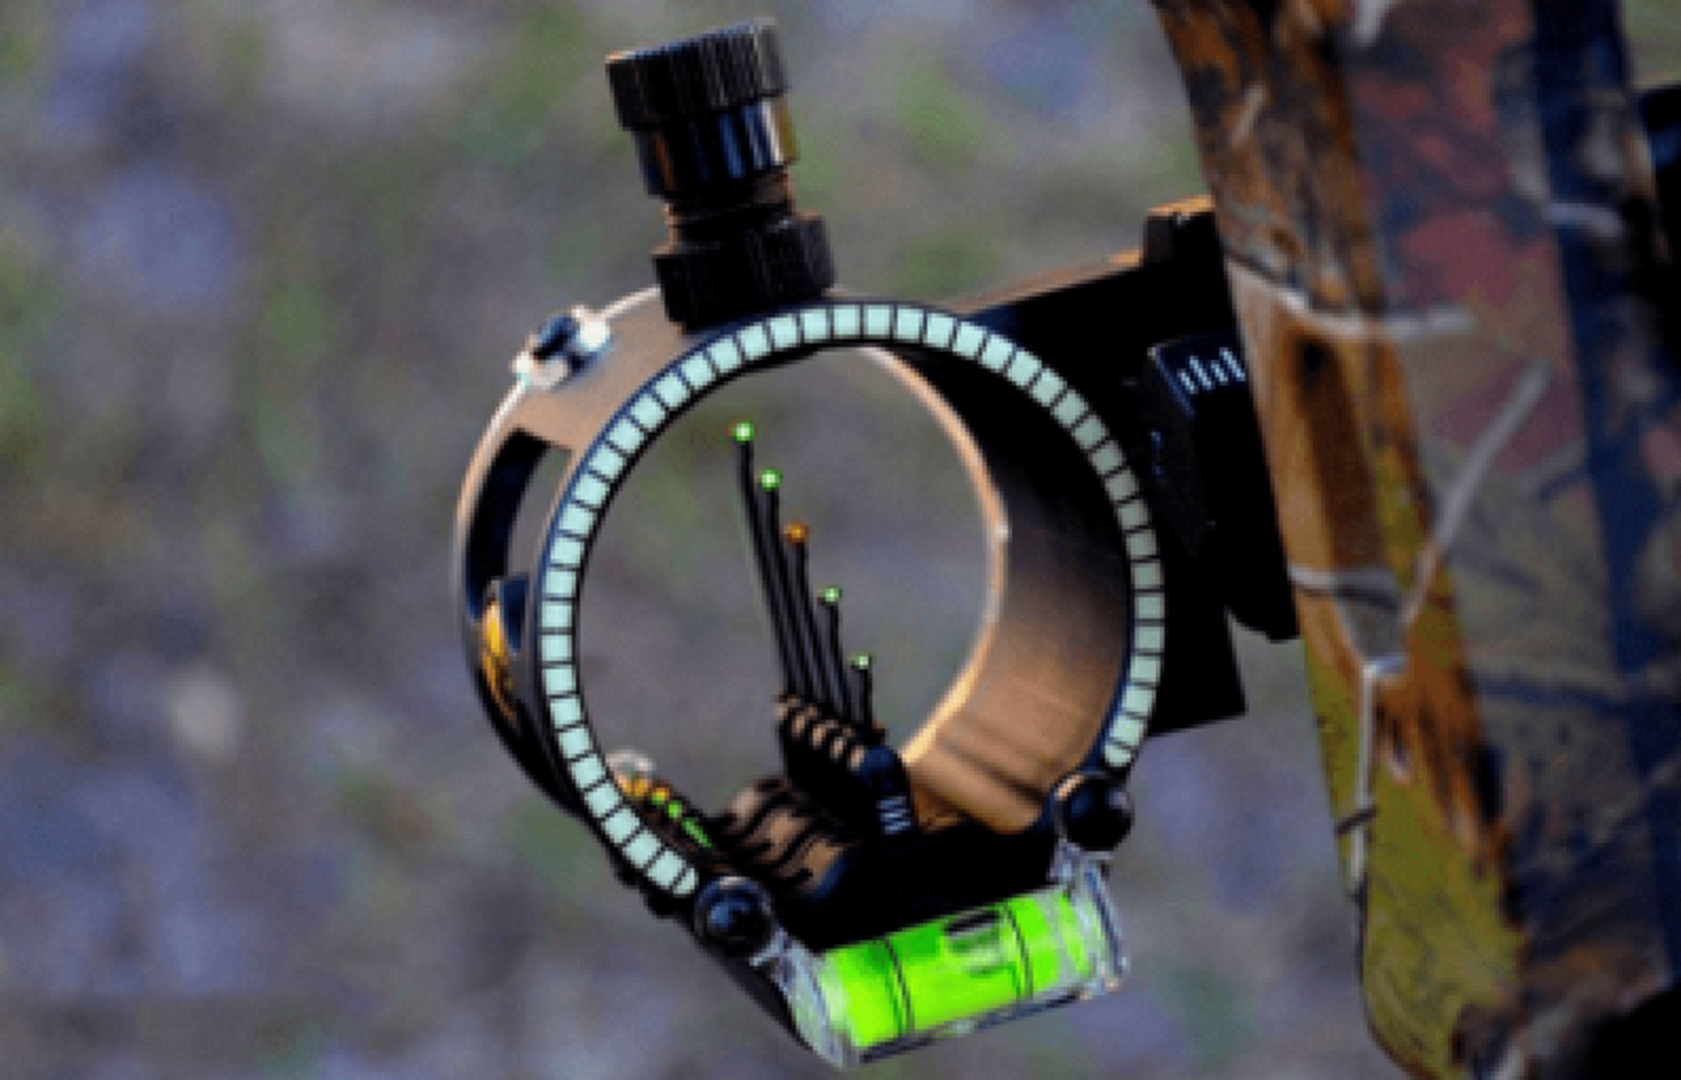 5-Pin Bow Sight Close Up View